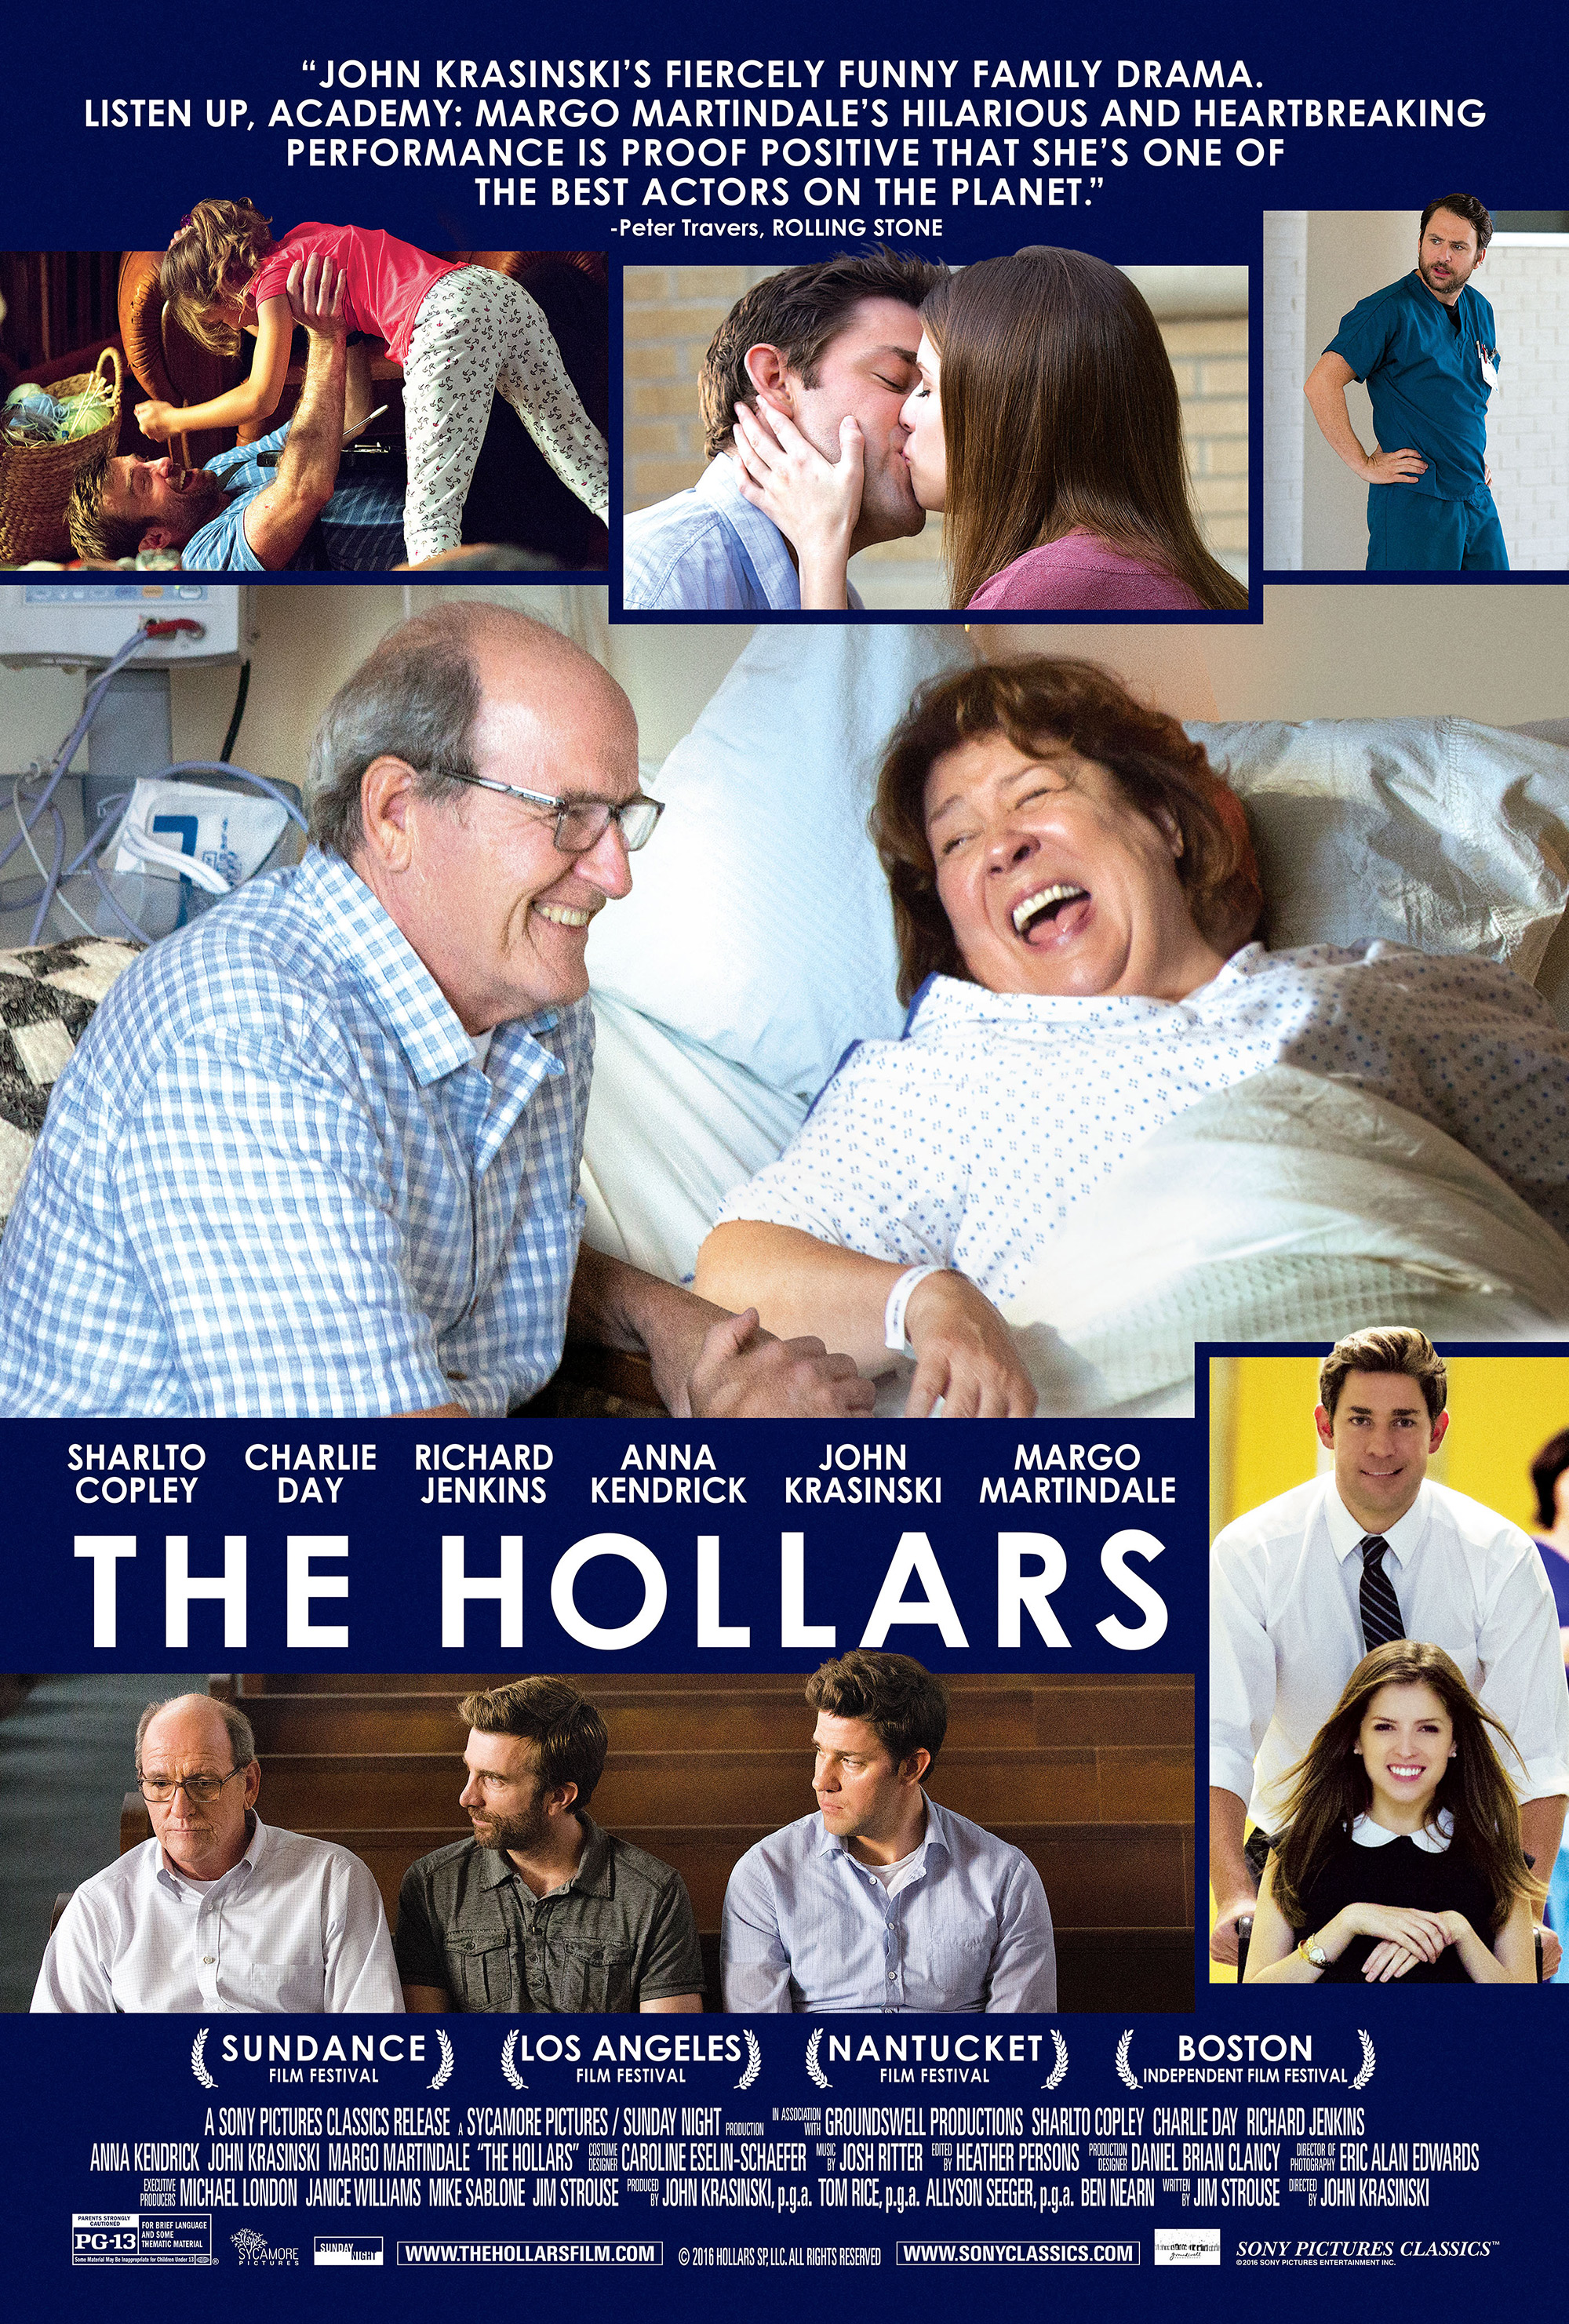 Friday Night at the Movies – The Hollars